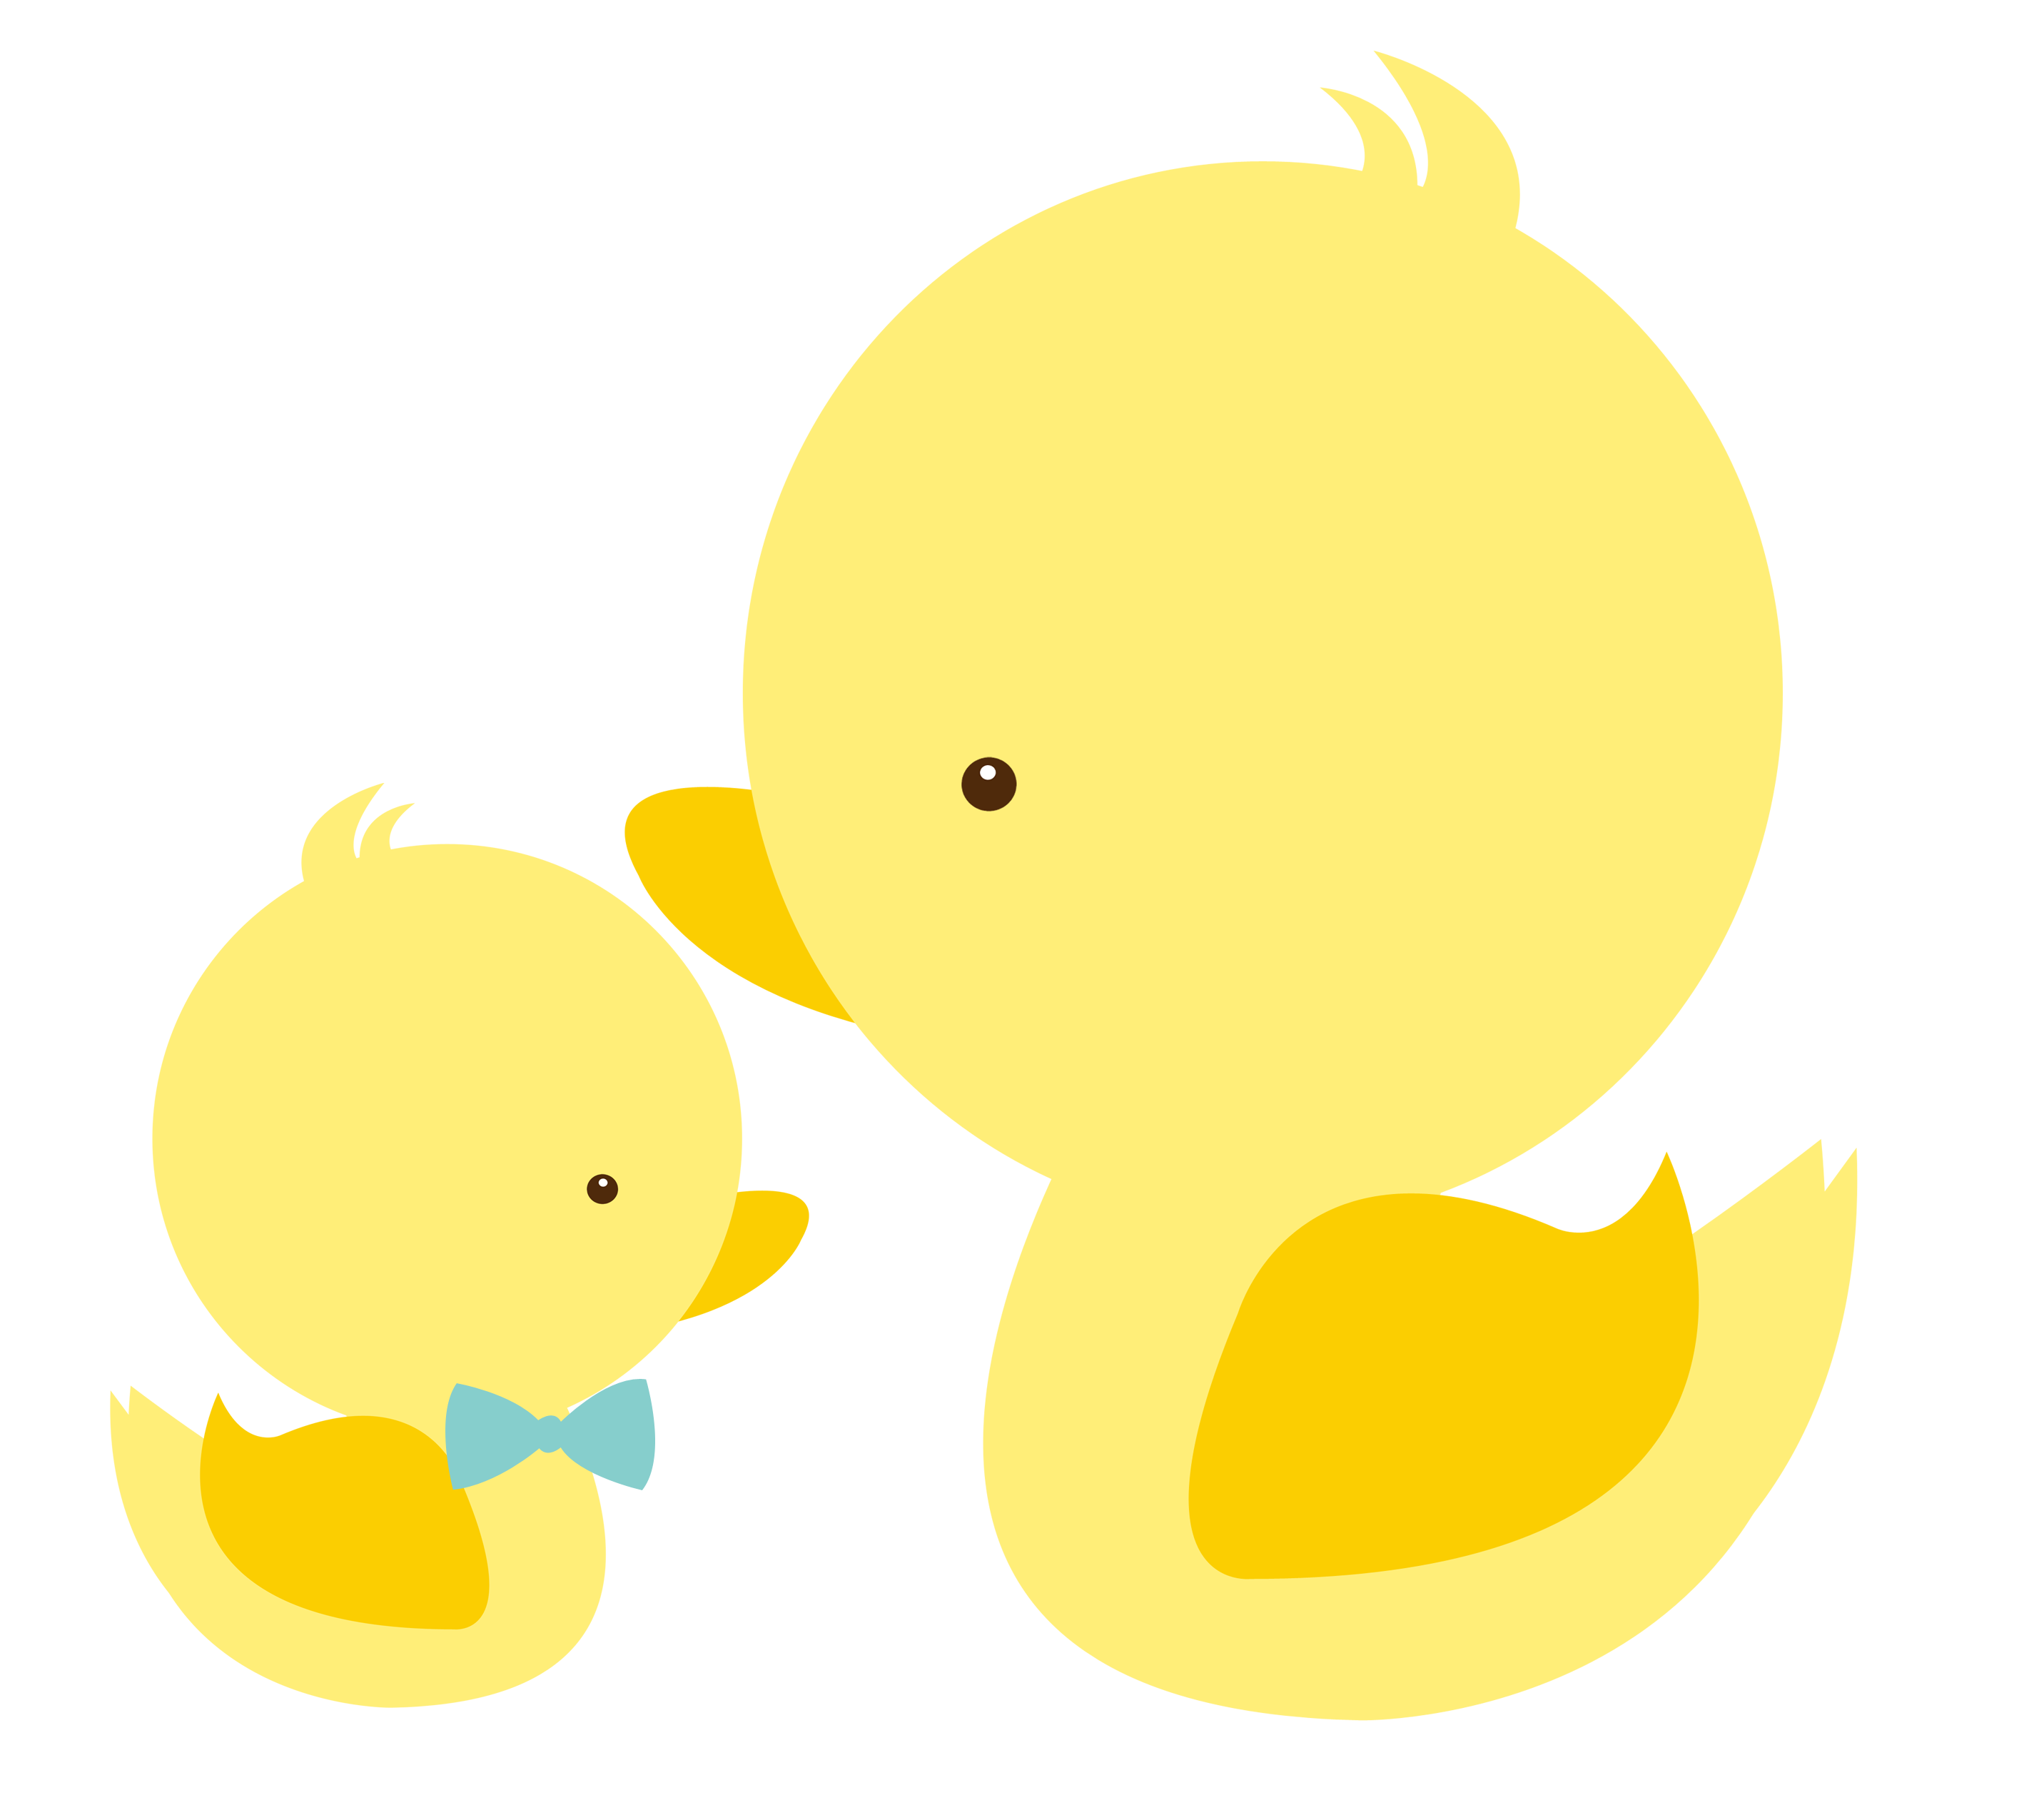 Cat mom and baby. Ducks clipart little duck